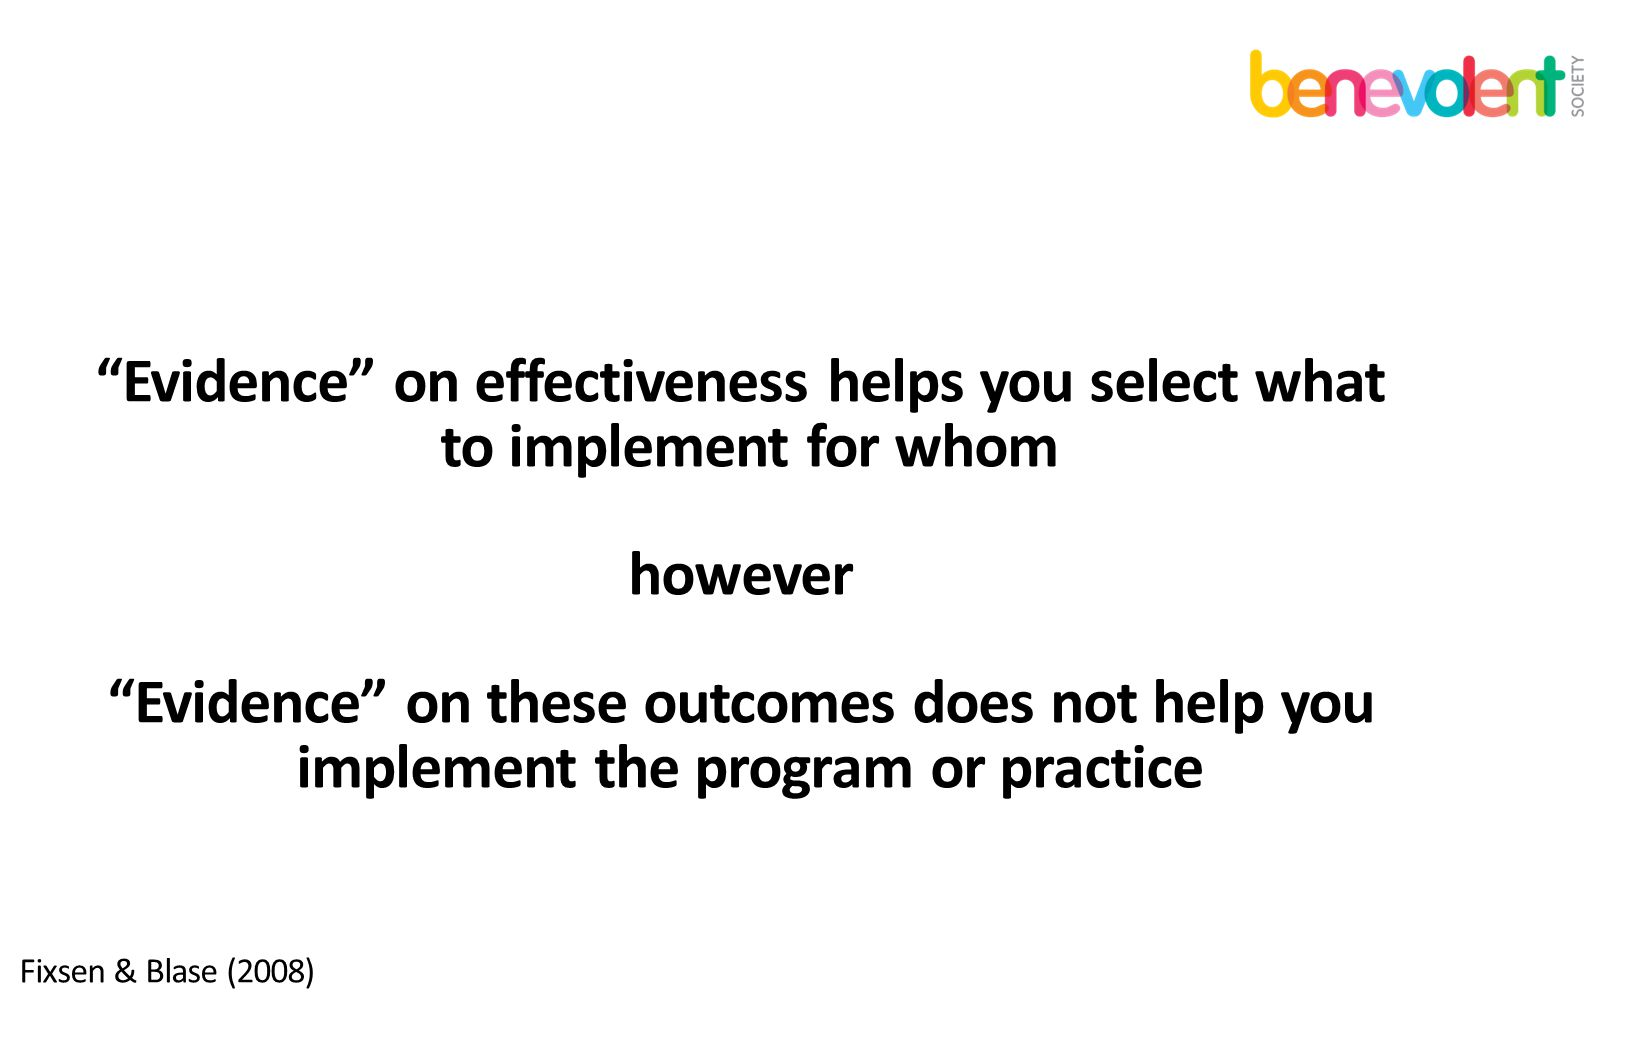 Evidence on effectiveness helps you select what to implement for whom